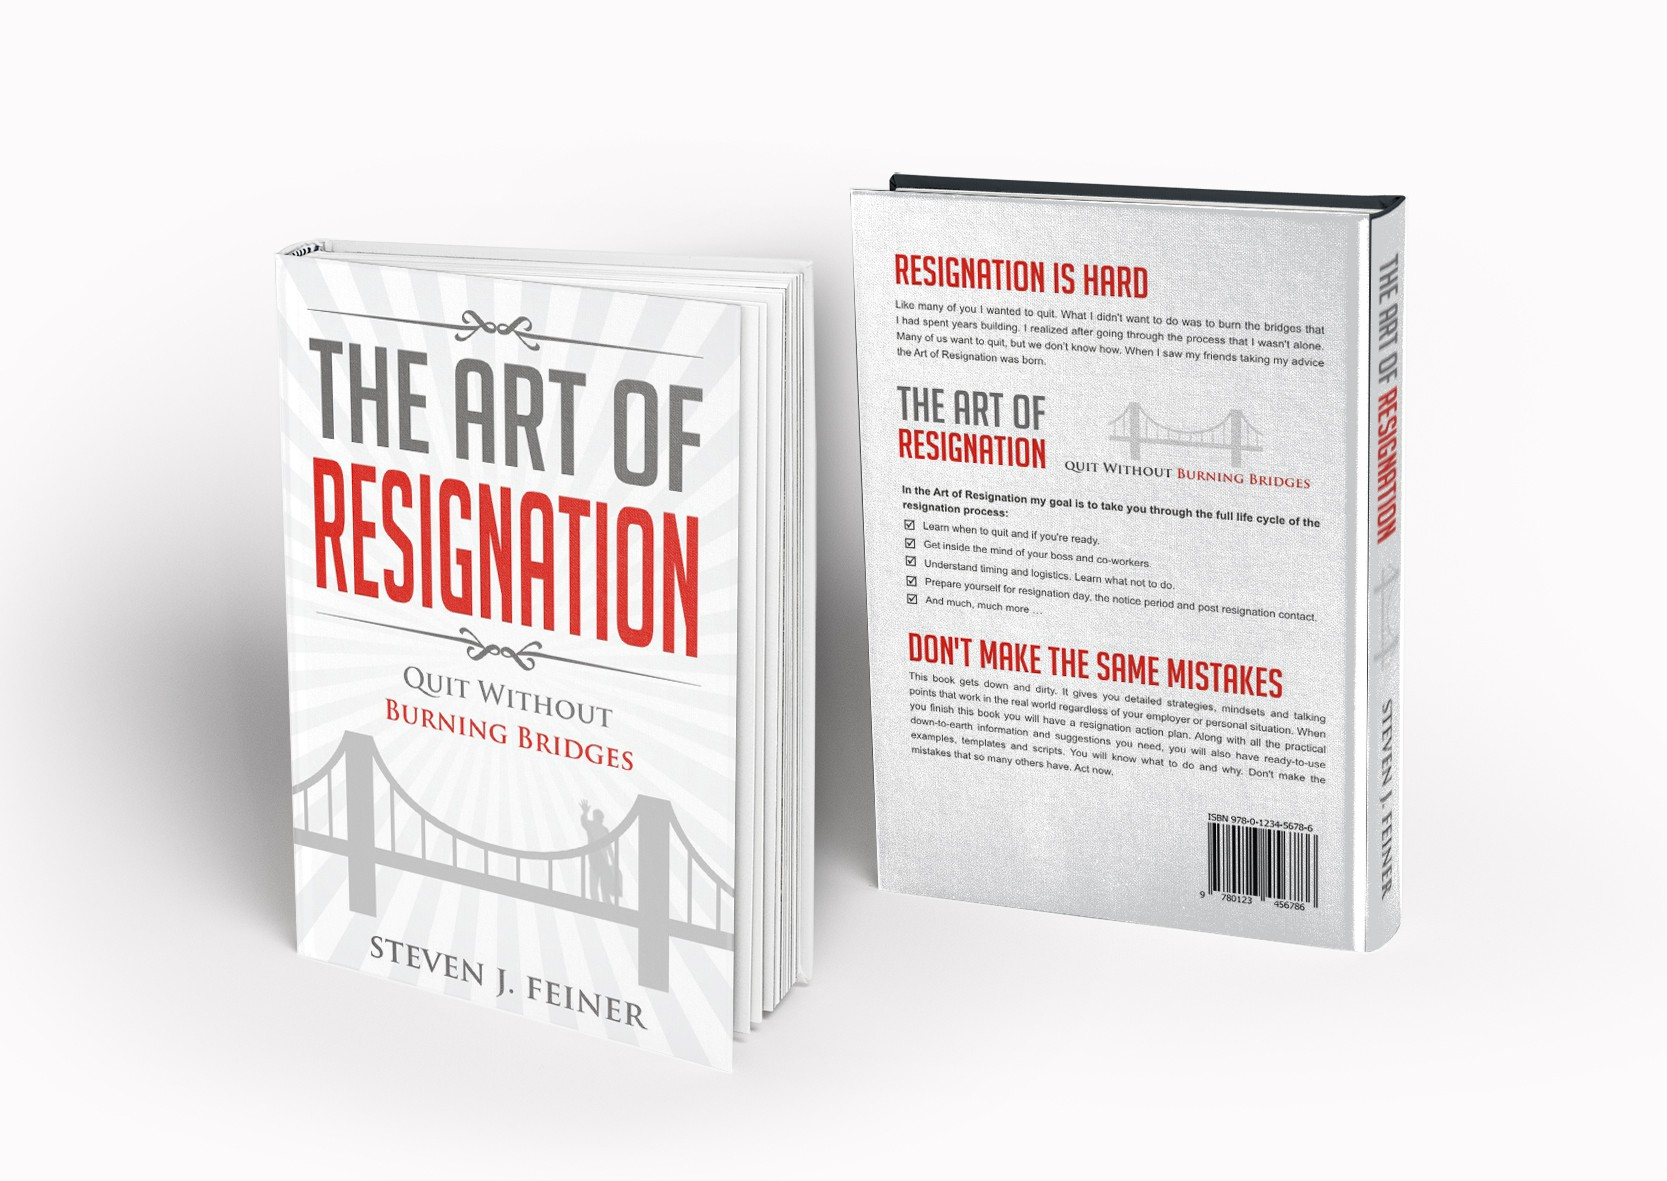 Create an eye grabbing book cover for a book on Quitting